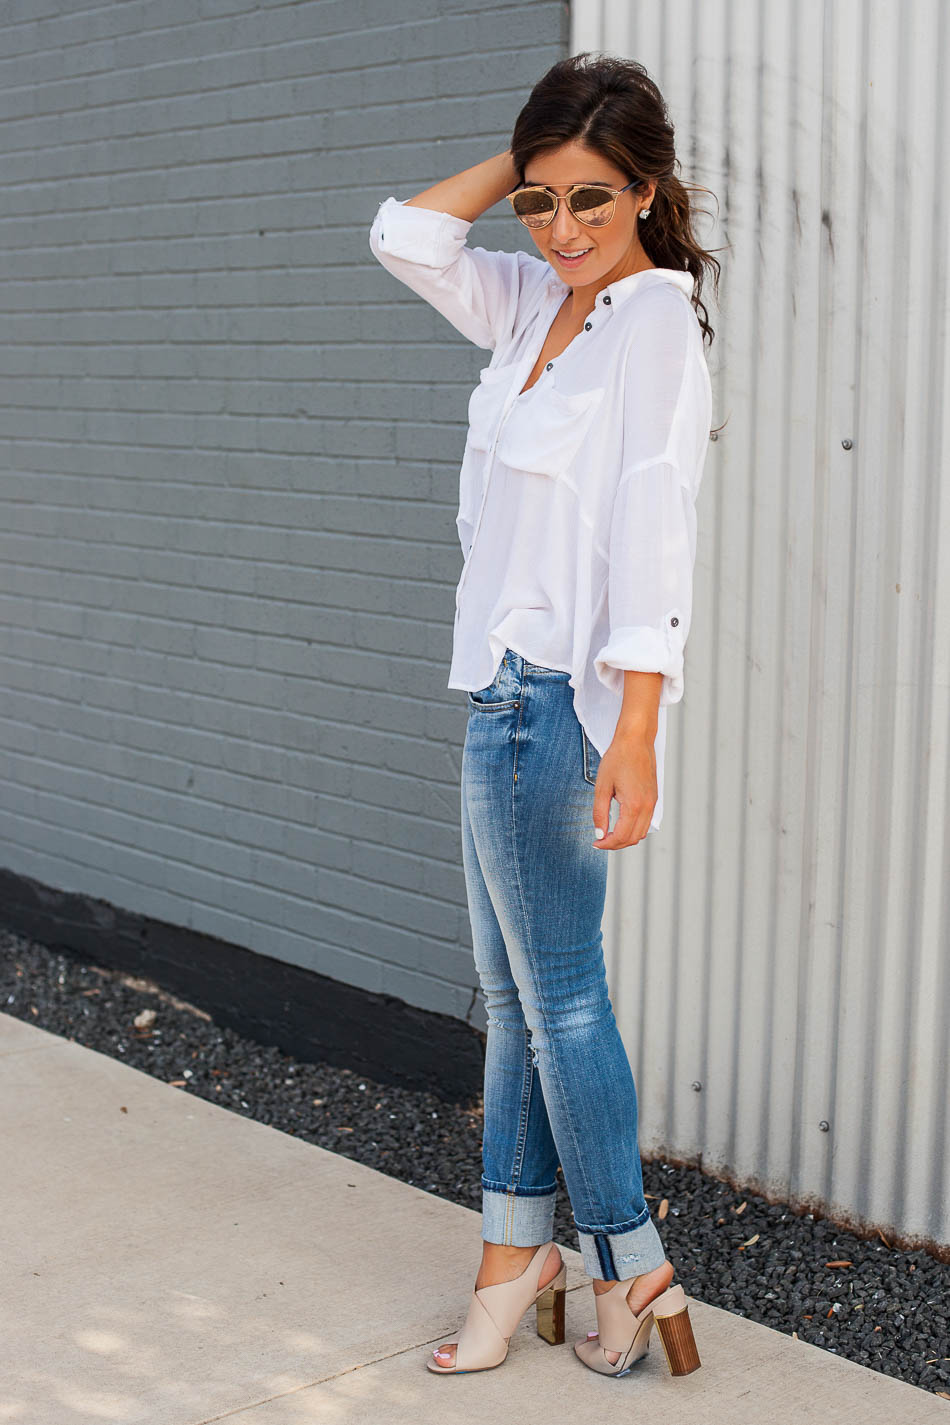 White Tee + Jeans - The Darling Detail